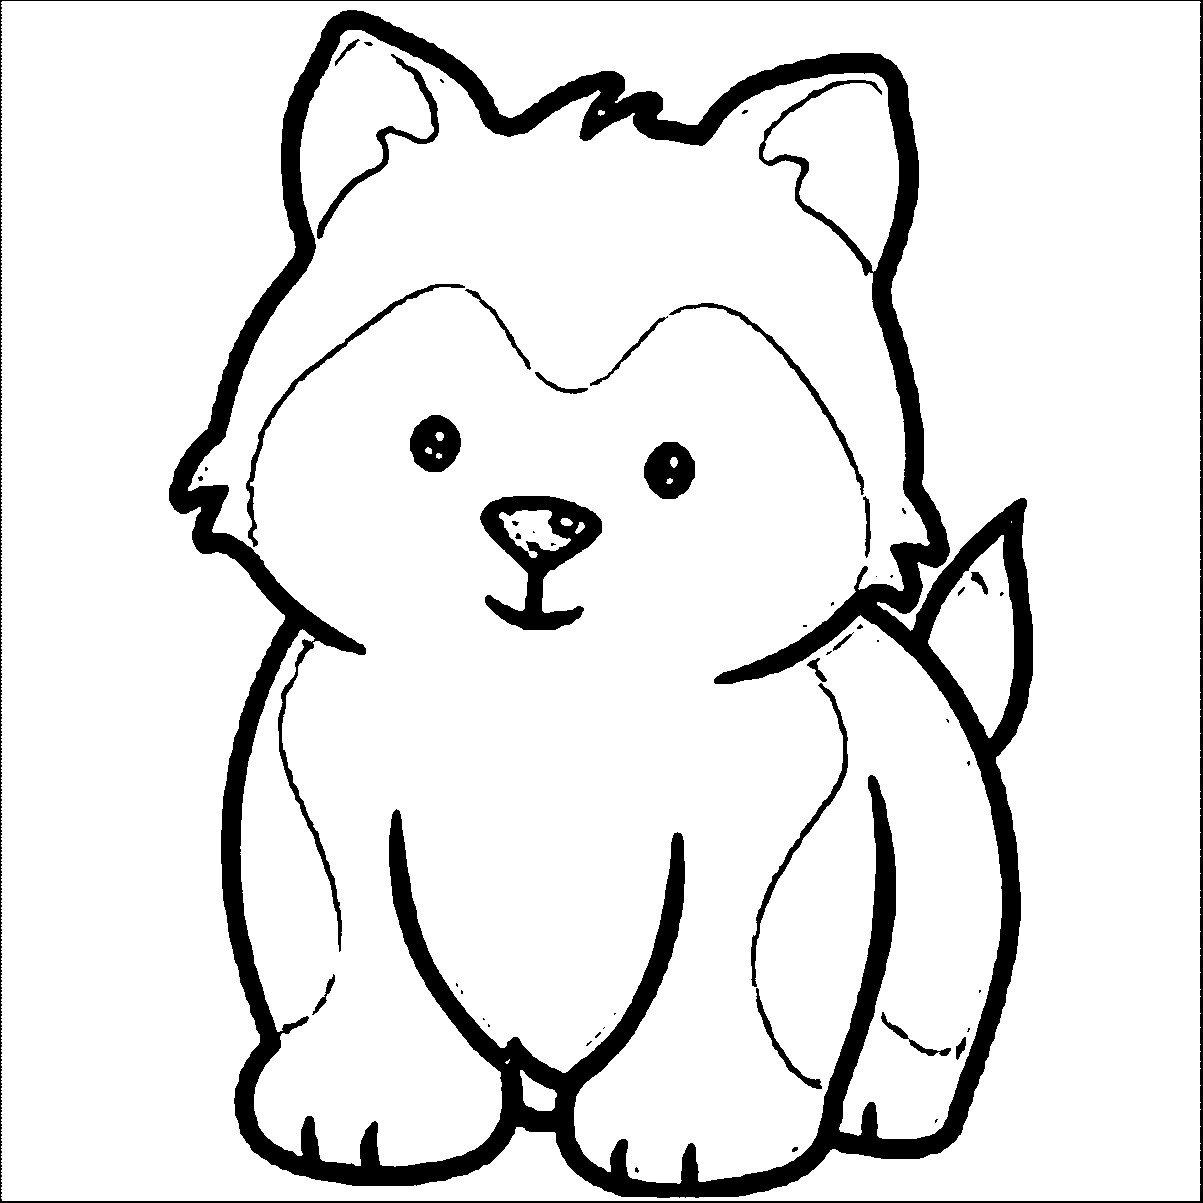 Coloring Pages Of Puppies Elegant Husky Coloring Pages Puppy Coloring Pages Dog Coloring Page Animal Coloring Pages [ 1203 x 1203 Pixel ]